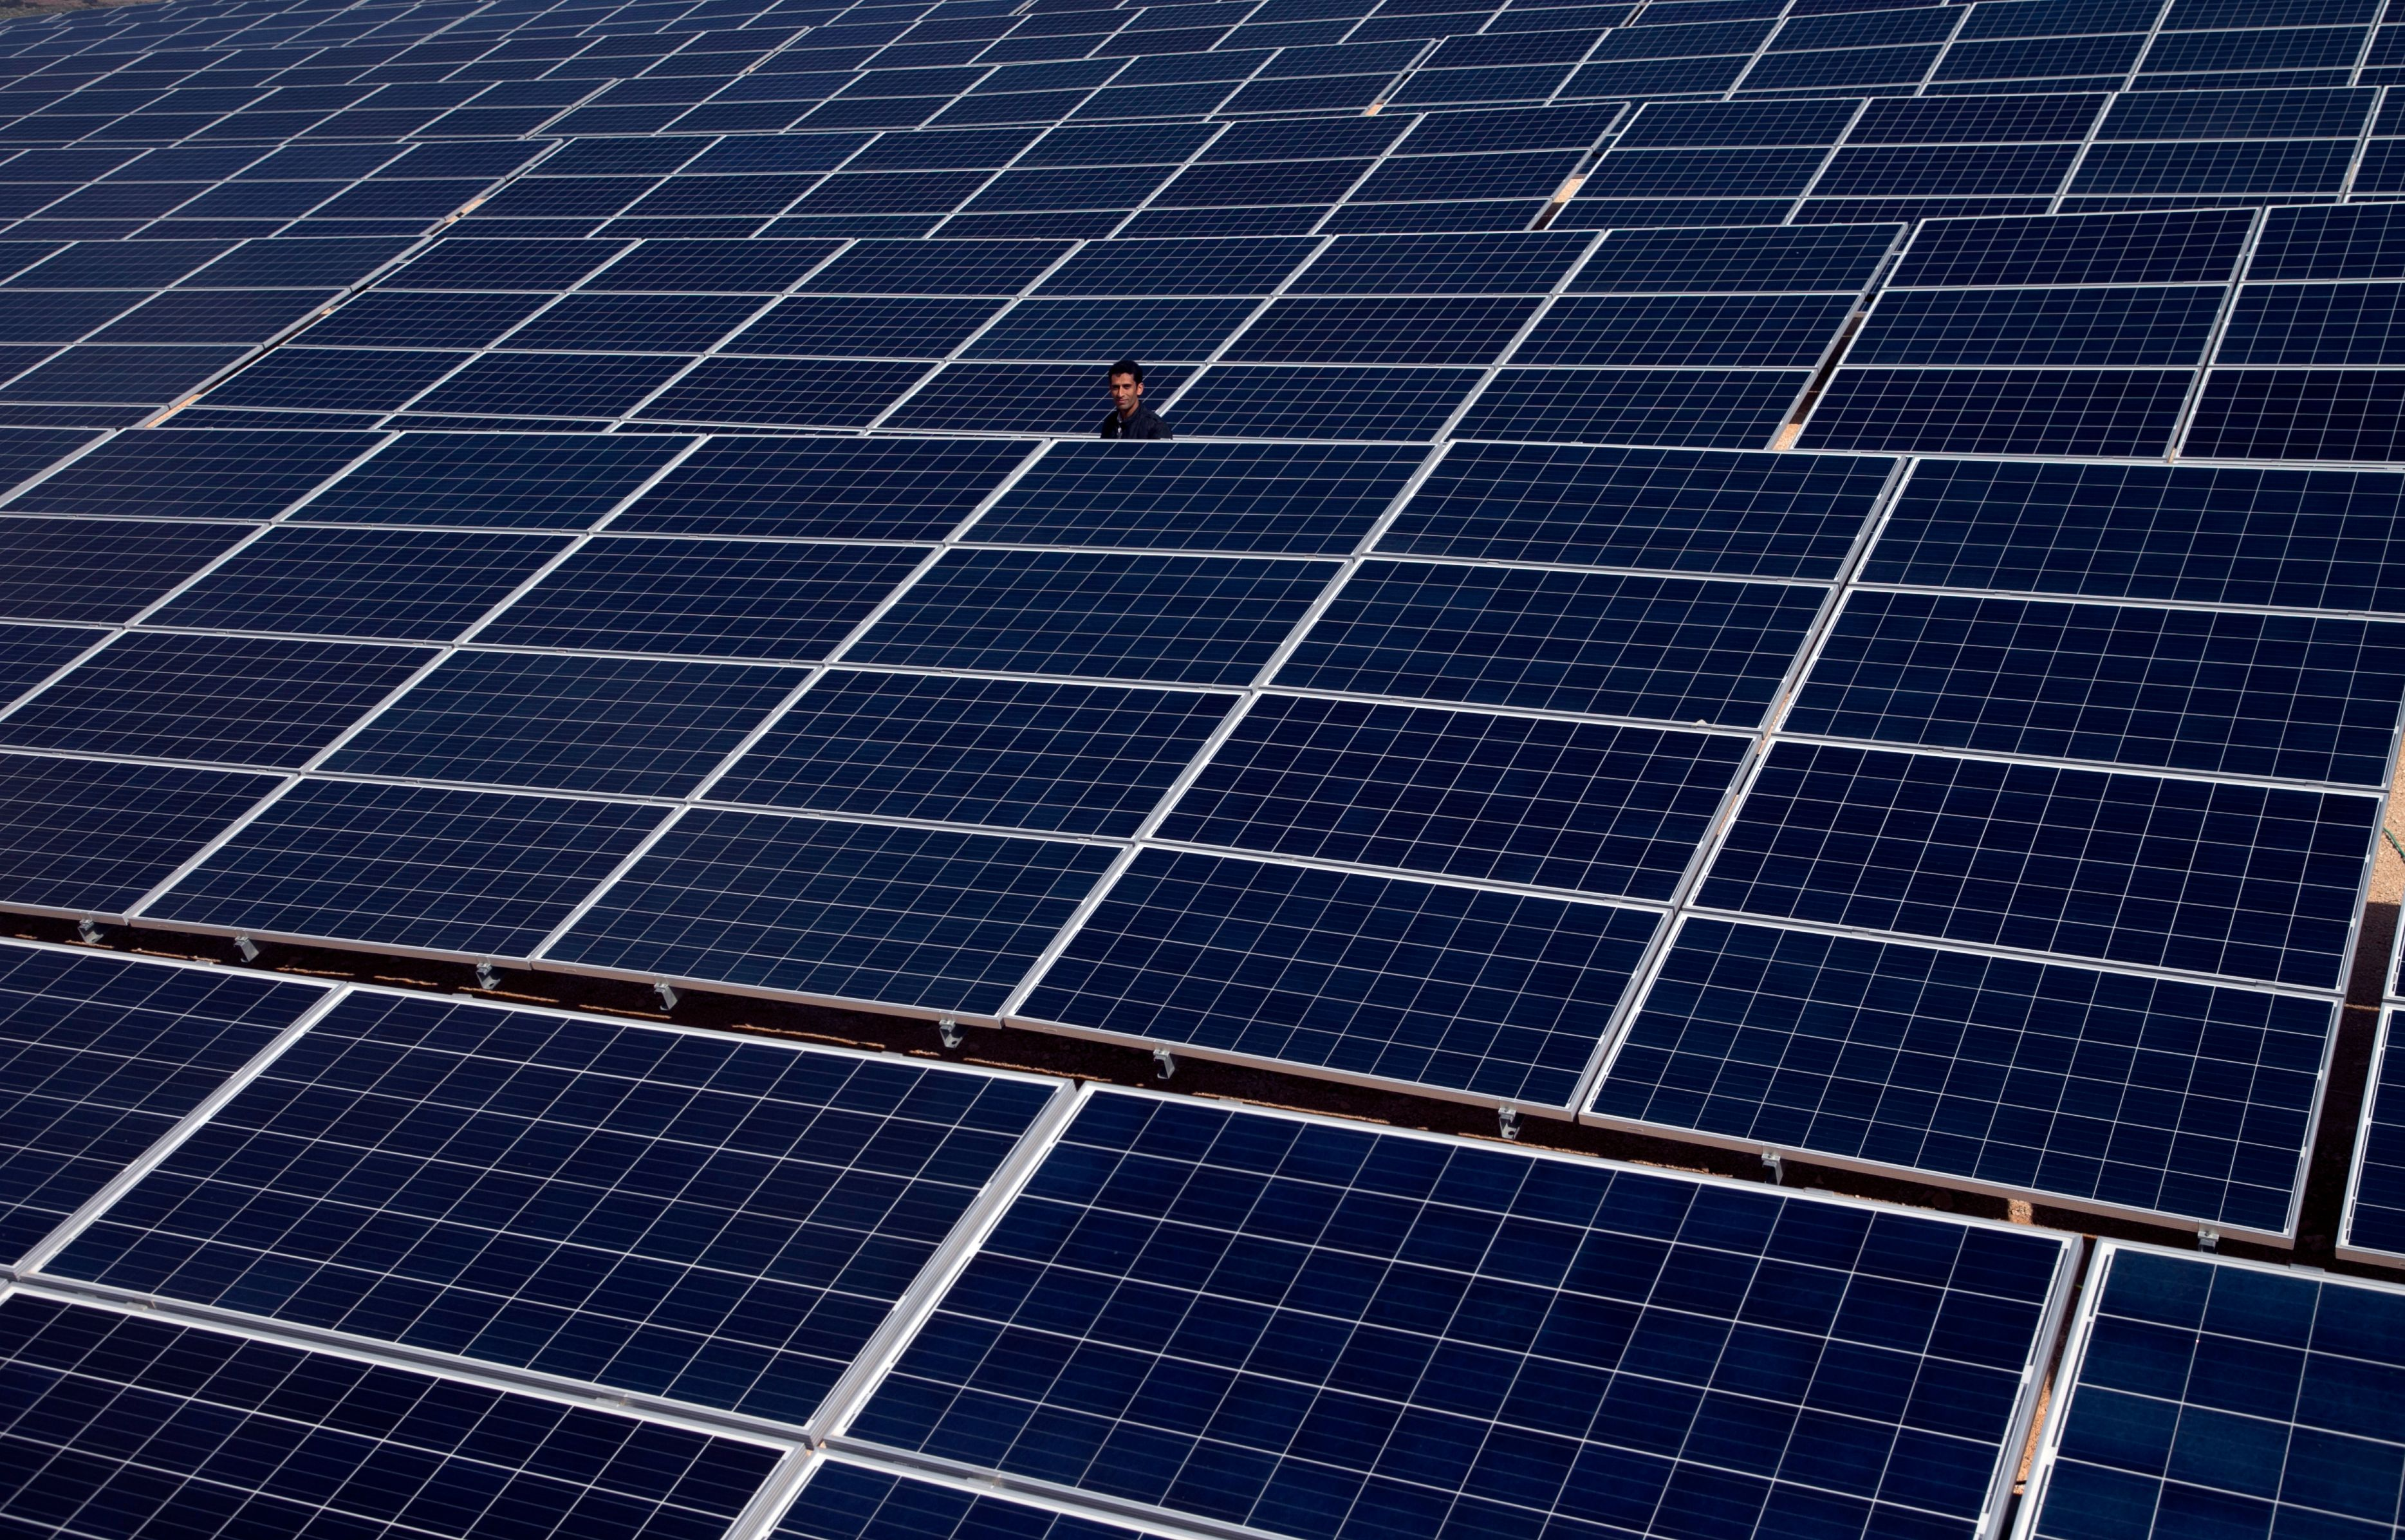 A man stand among rows of solar power panels